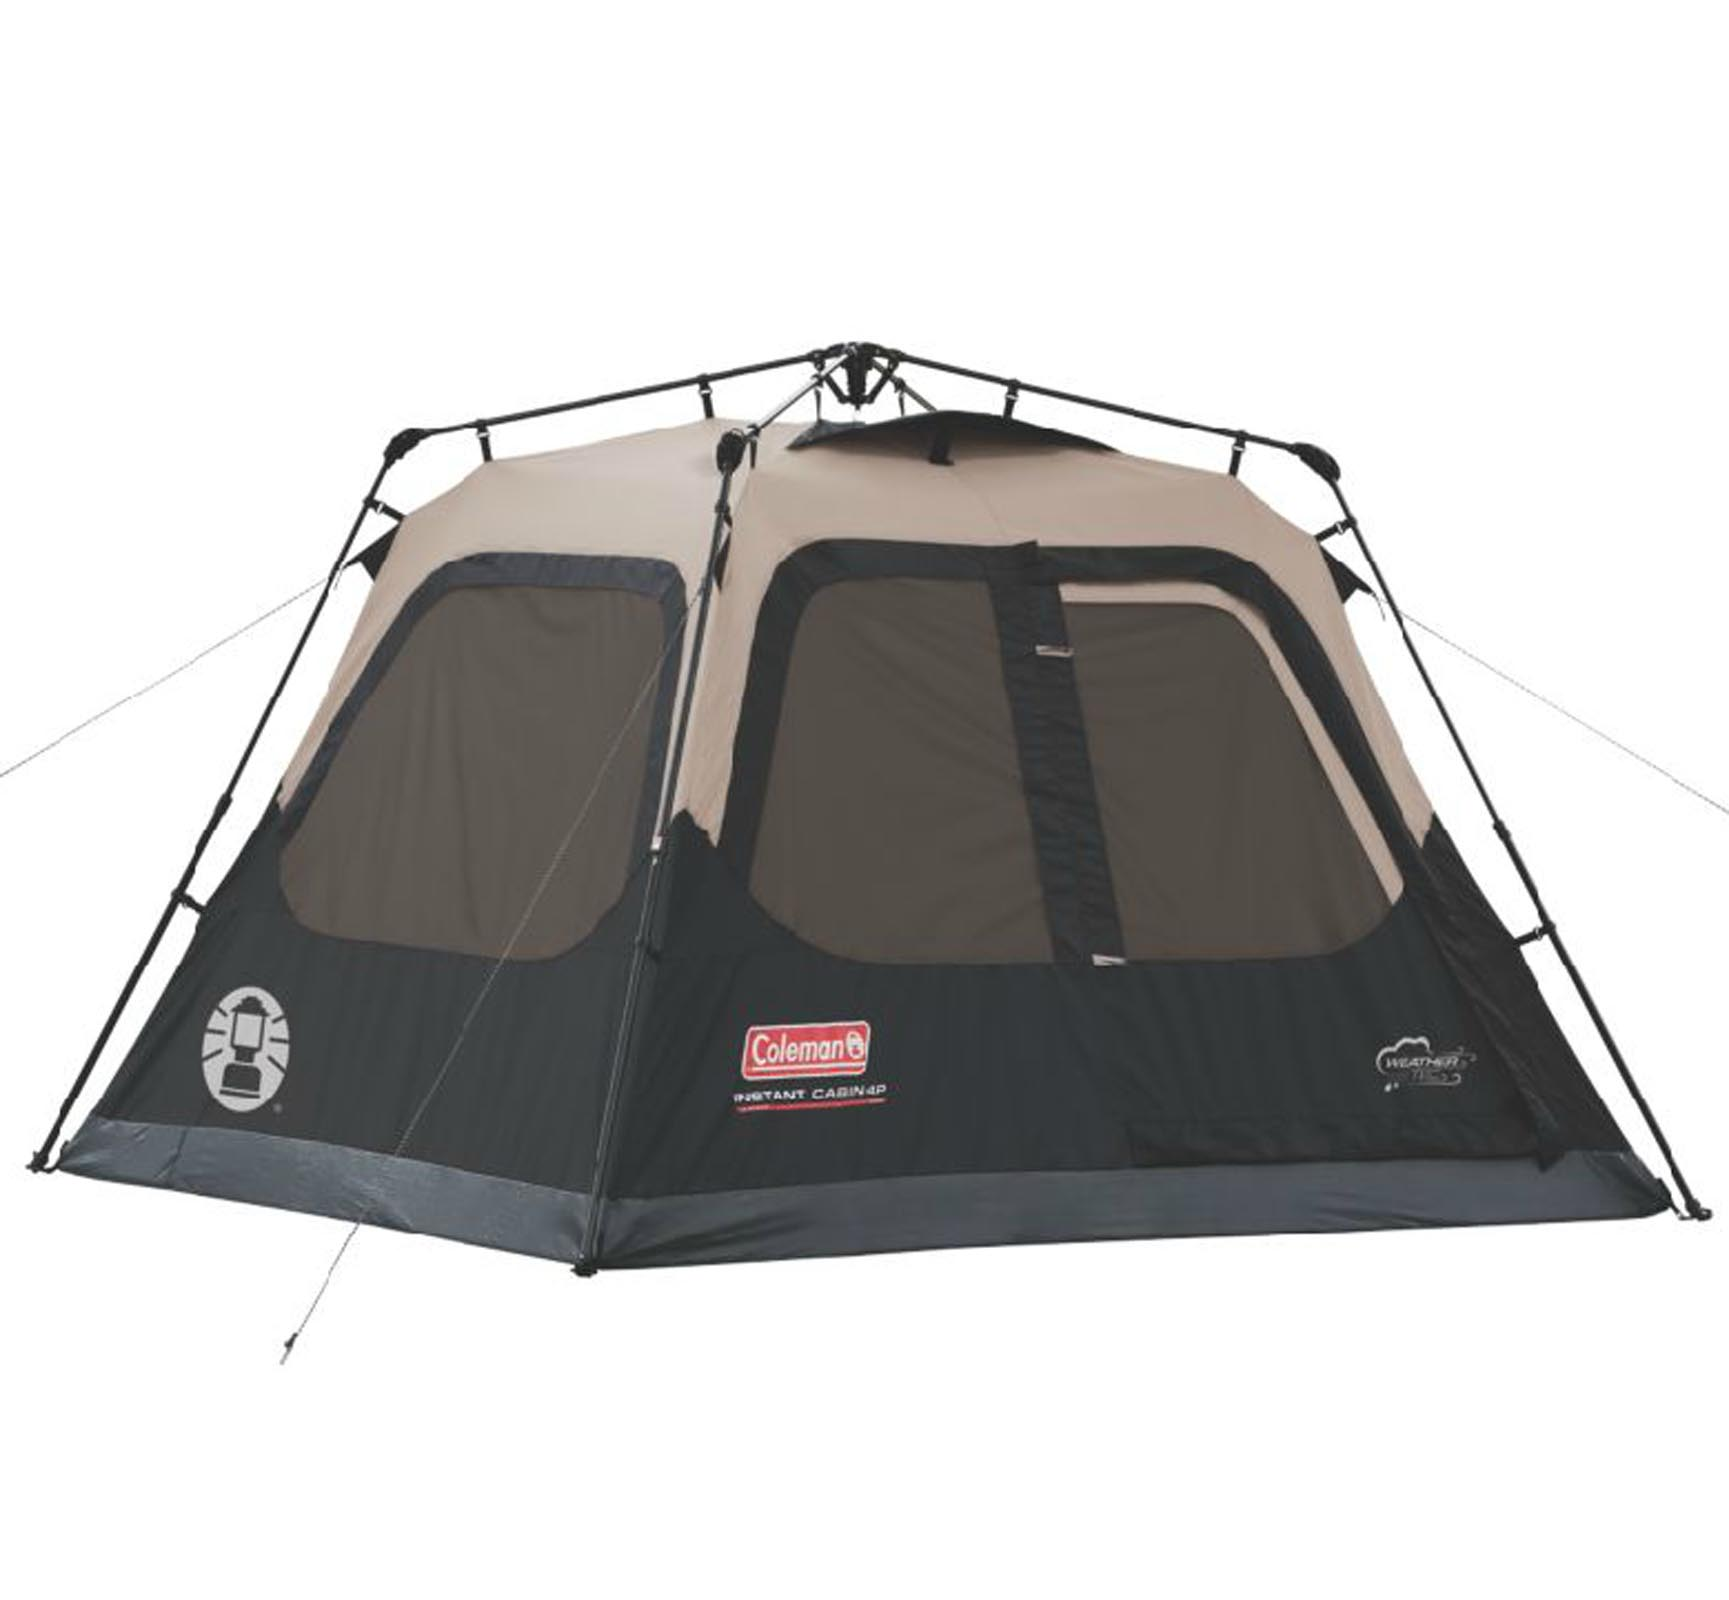 Coleman Instant Set-Up 4-Person Tent, 8' x 7' by COLEMAN